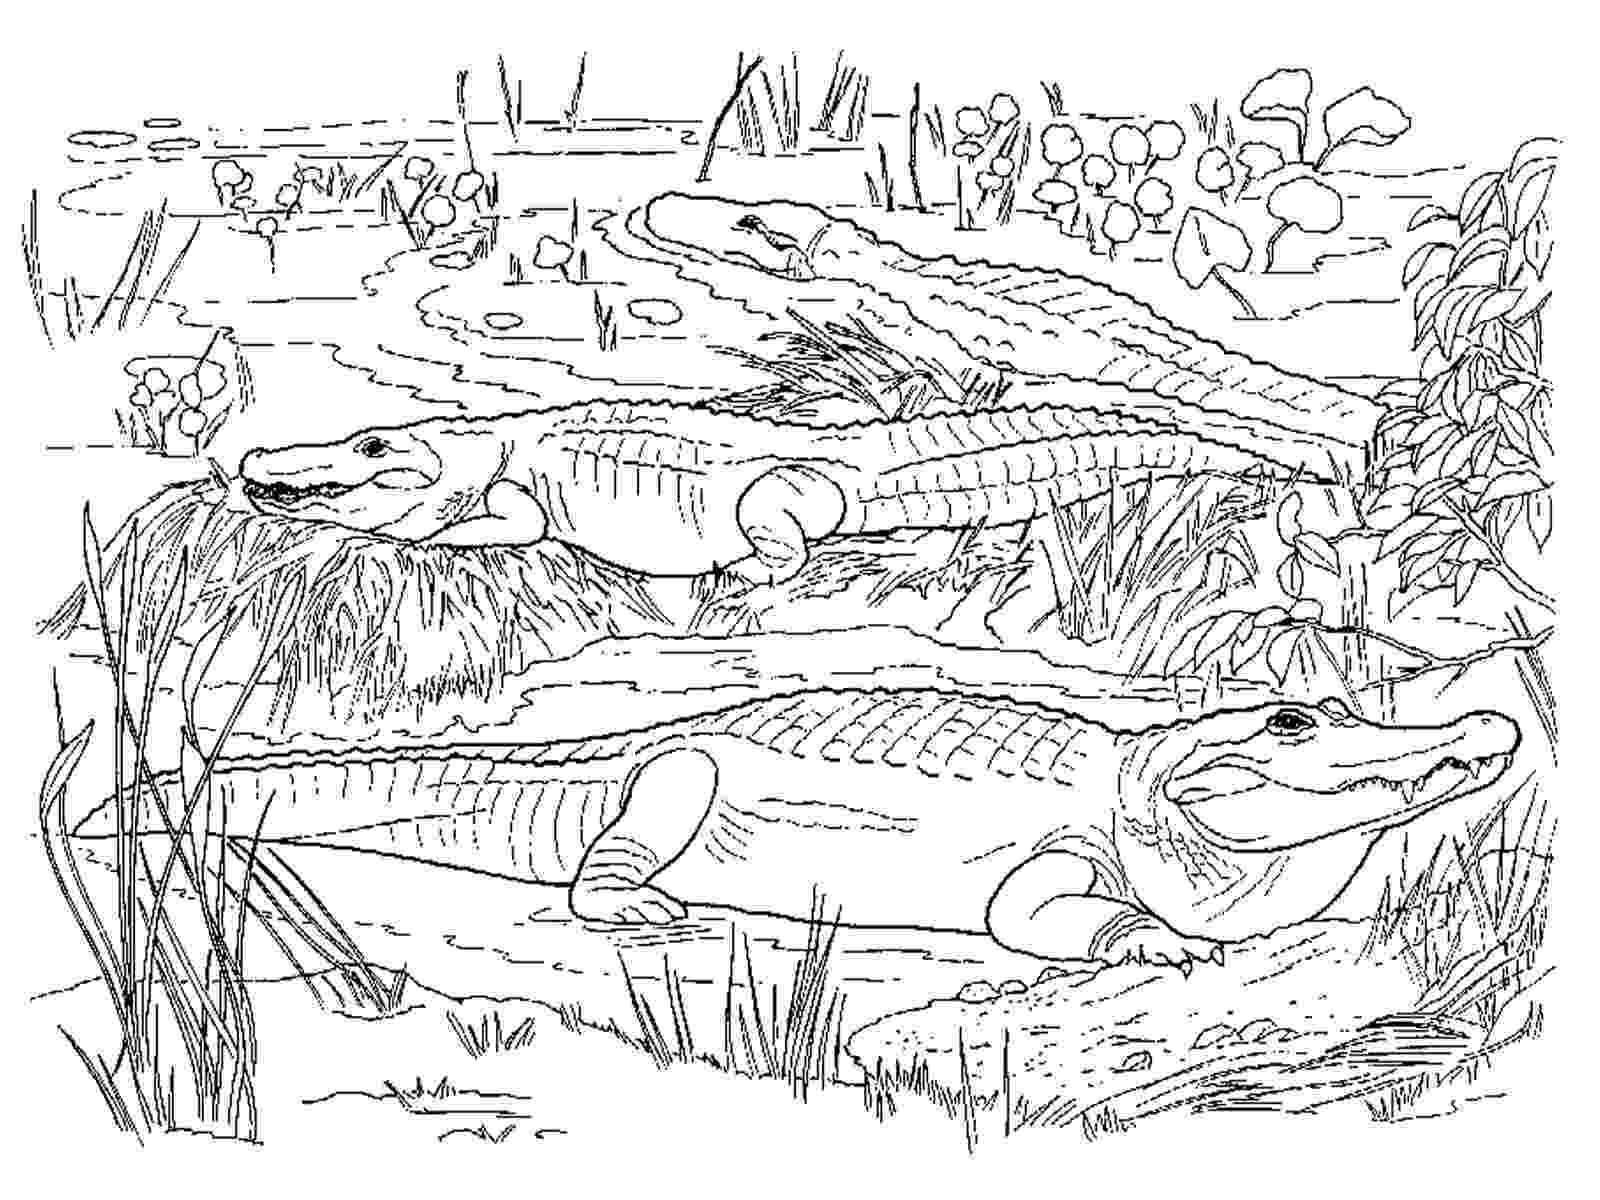 aligator coloring pages free printable alligator coloring pages for kids pages coloring aligator 1 1